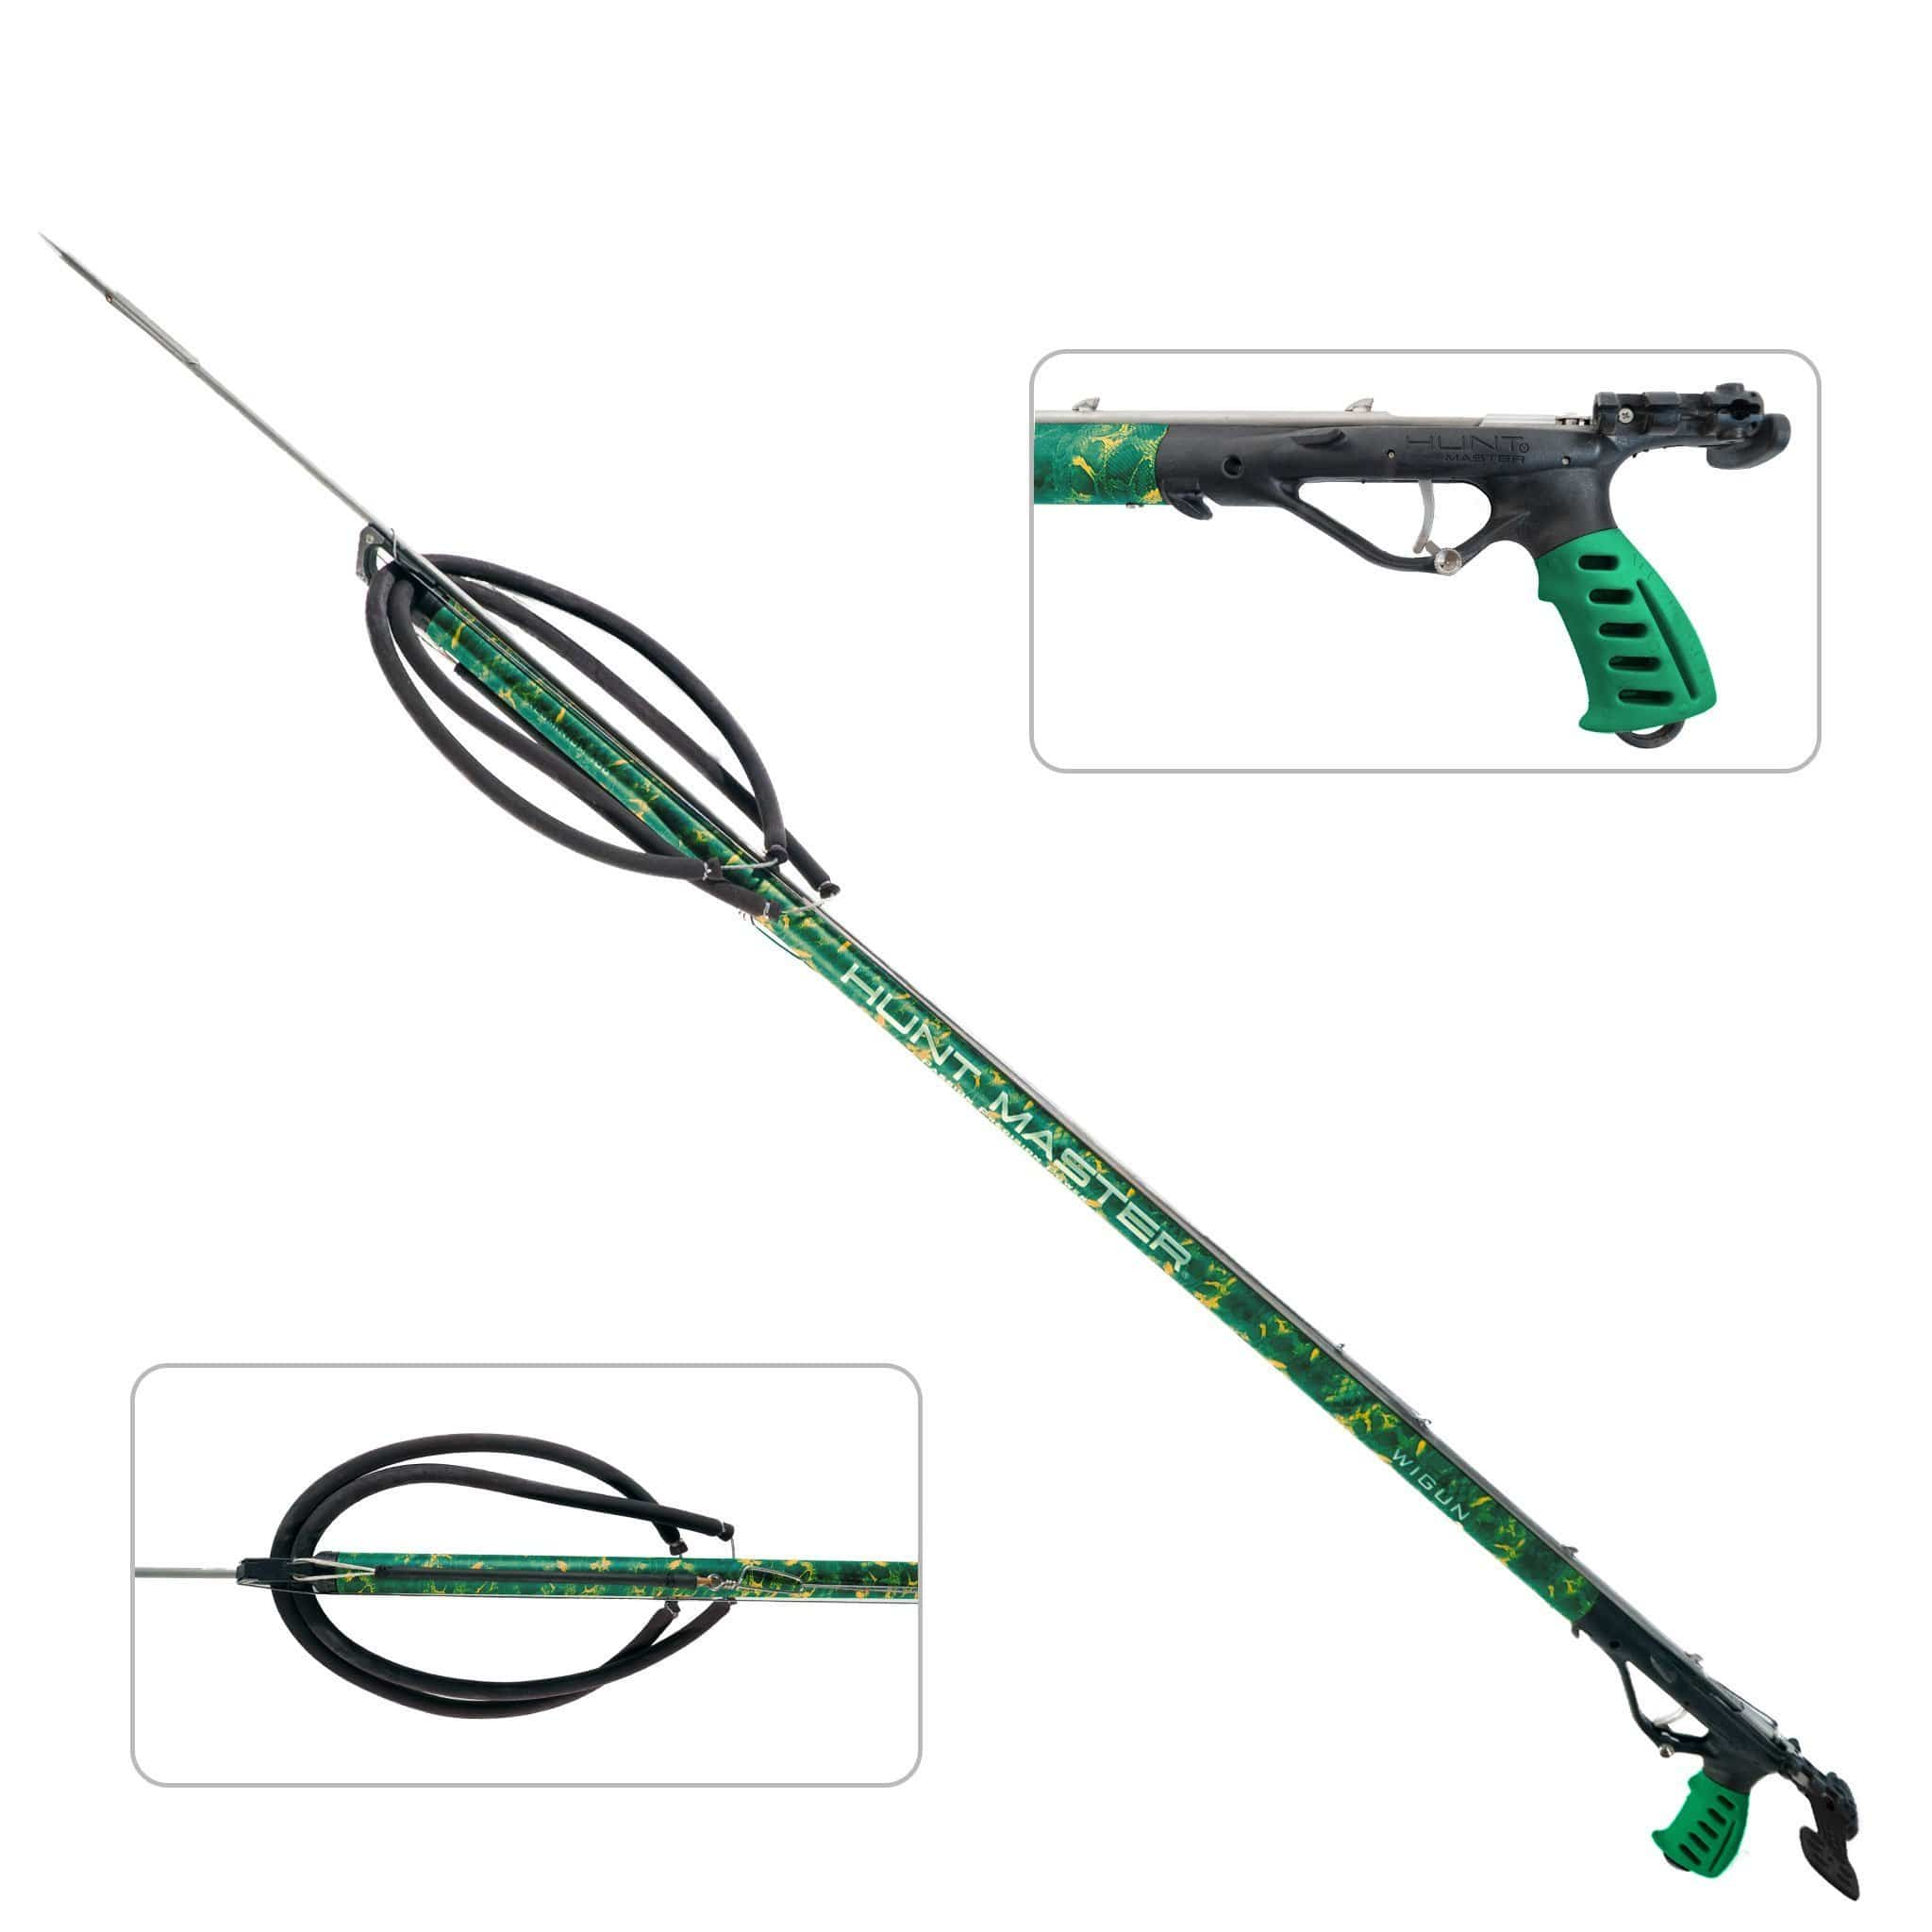 HuntMaster Wigun Aluminium Open Head Speargun - Camo Series (Green) 75cm-110cm